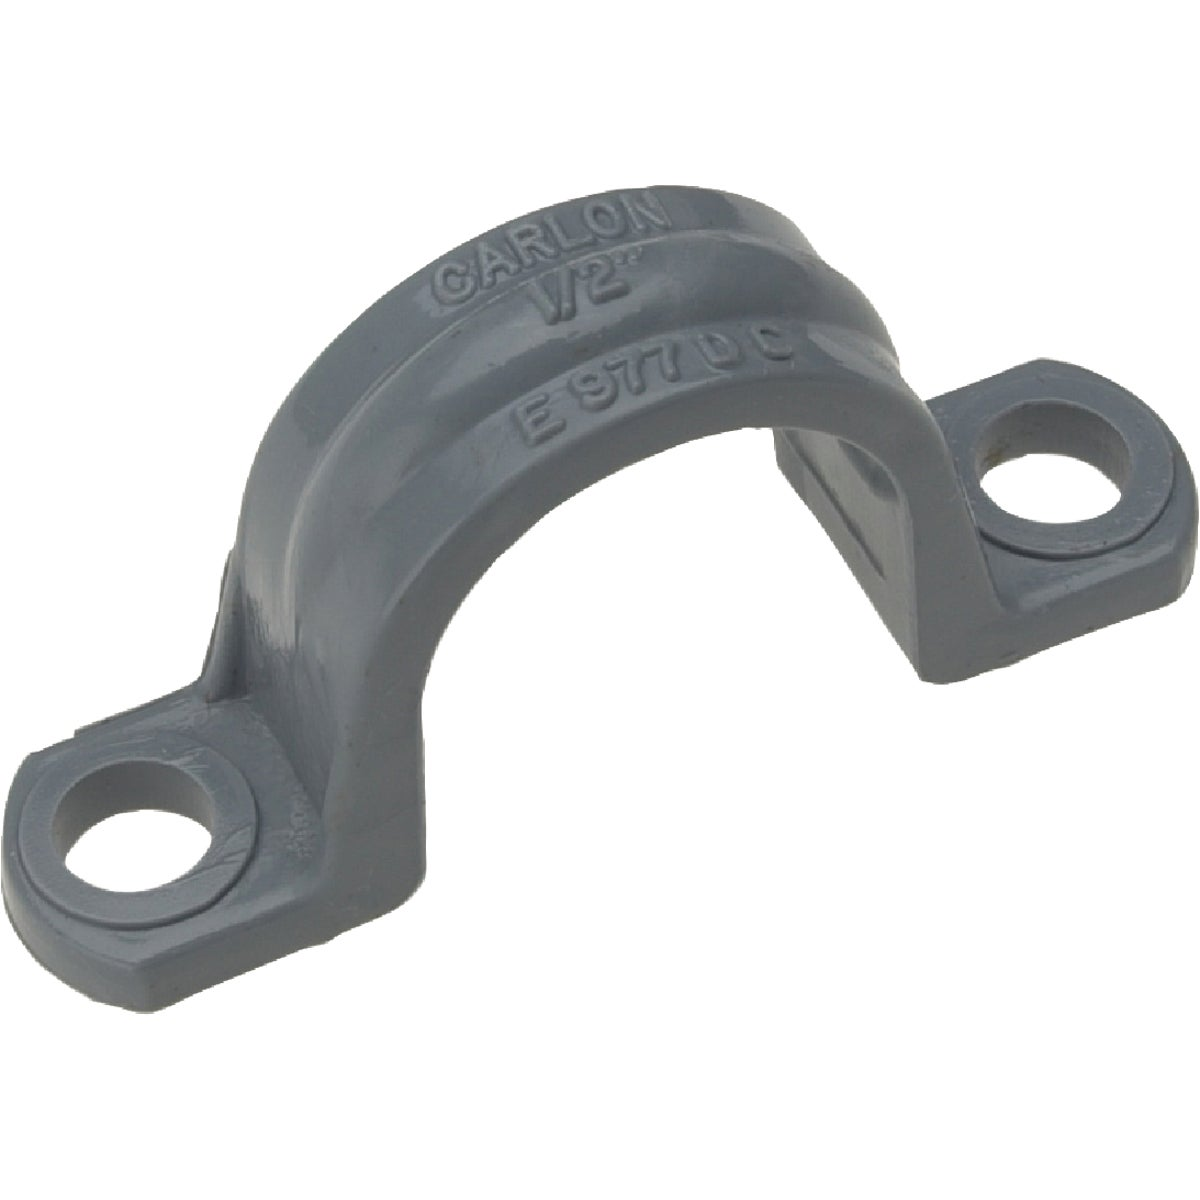 "1"" PVC STRAP - E977FCCTN by Thomas & Betts"